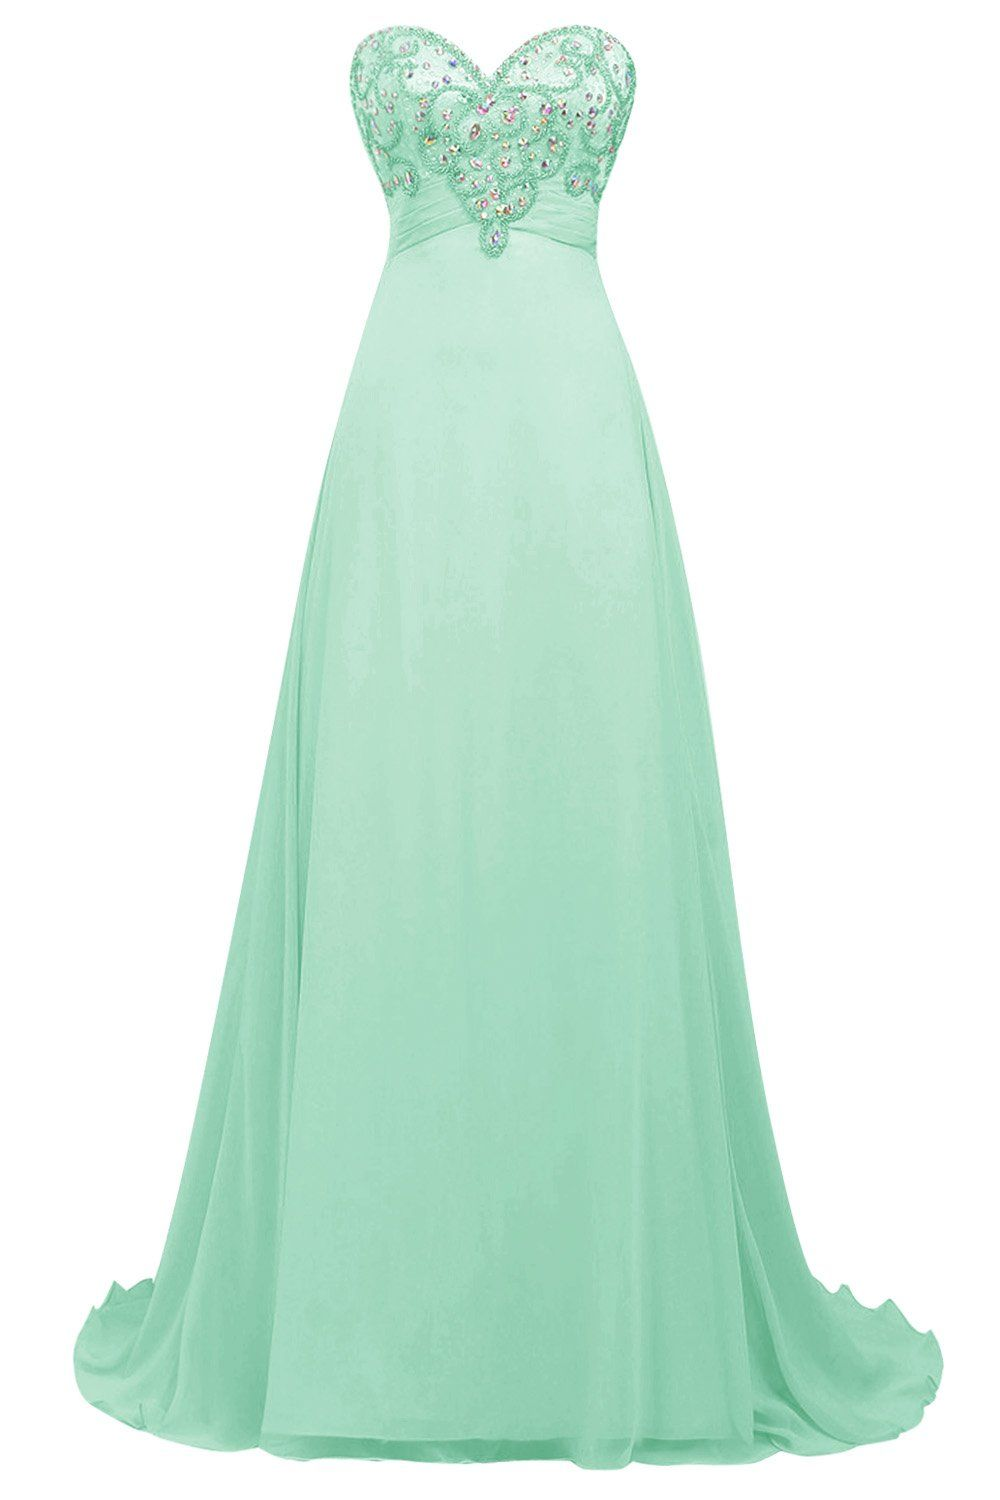 Bbonlinedress Maxi Cocktail-kleider Chiffon Ballkleider Sweetheart